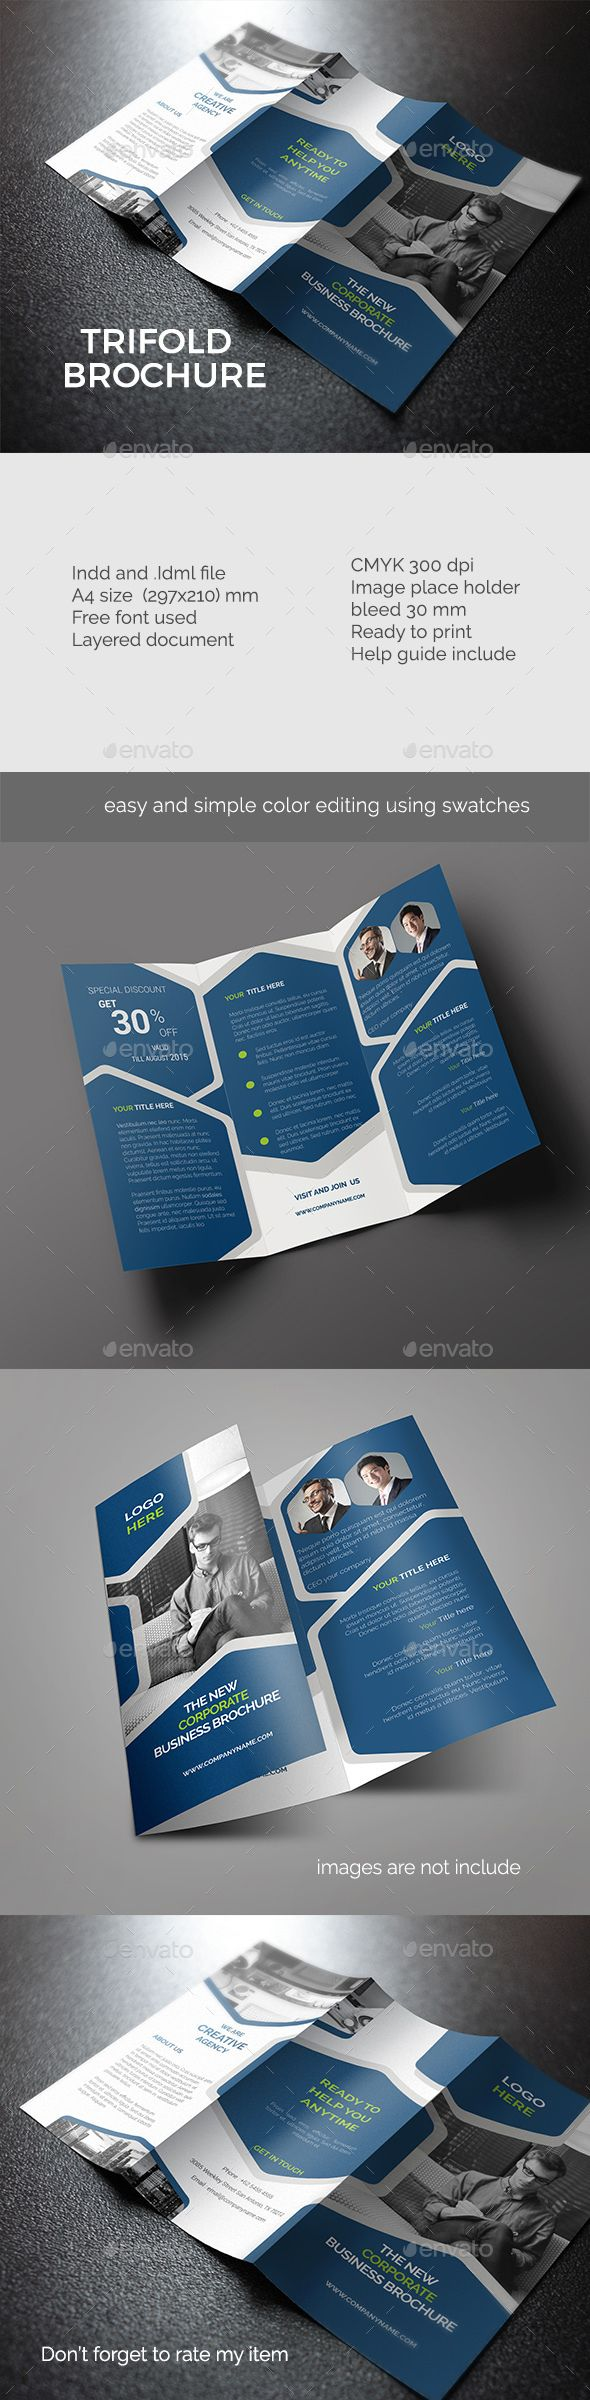 A4 Trifold Brochure   Brochure Templates   Pinterest   Brochure     A4 Trifold Brochure Template InDesign INDD  Download here   http   graphicriver net item a4 trifold brochure  15209187 ref ksioks